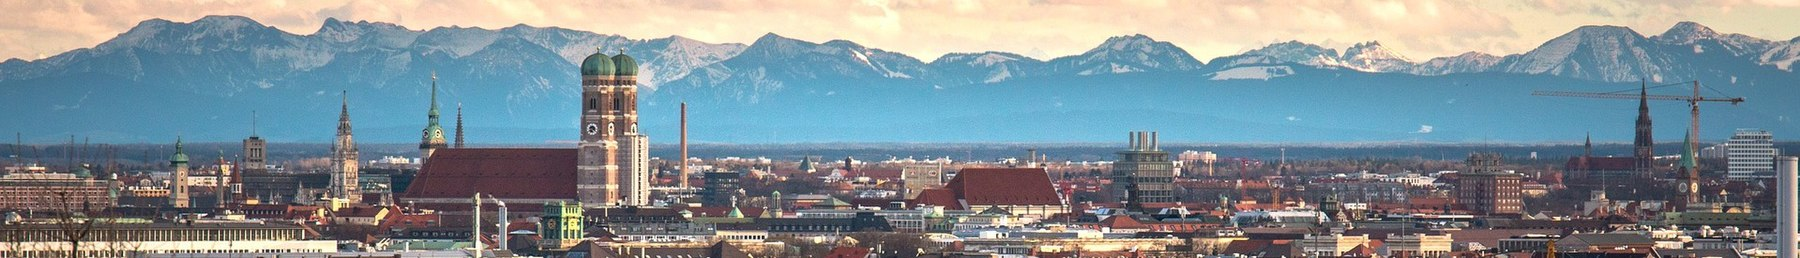 Munich Panorama (cropped for Wikivoyage).jpg